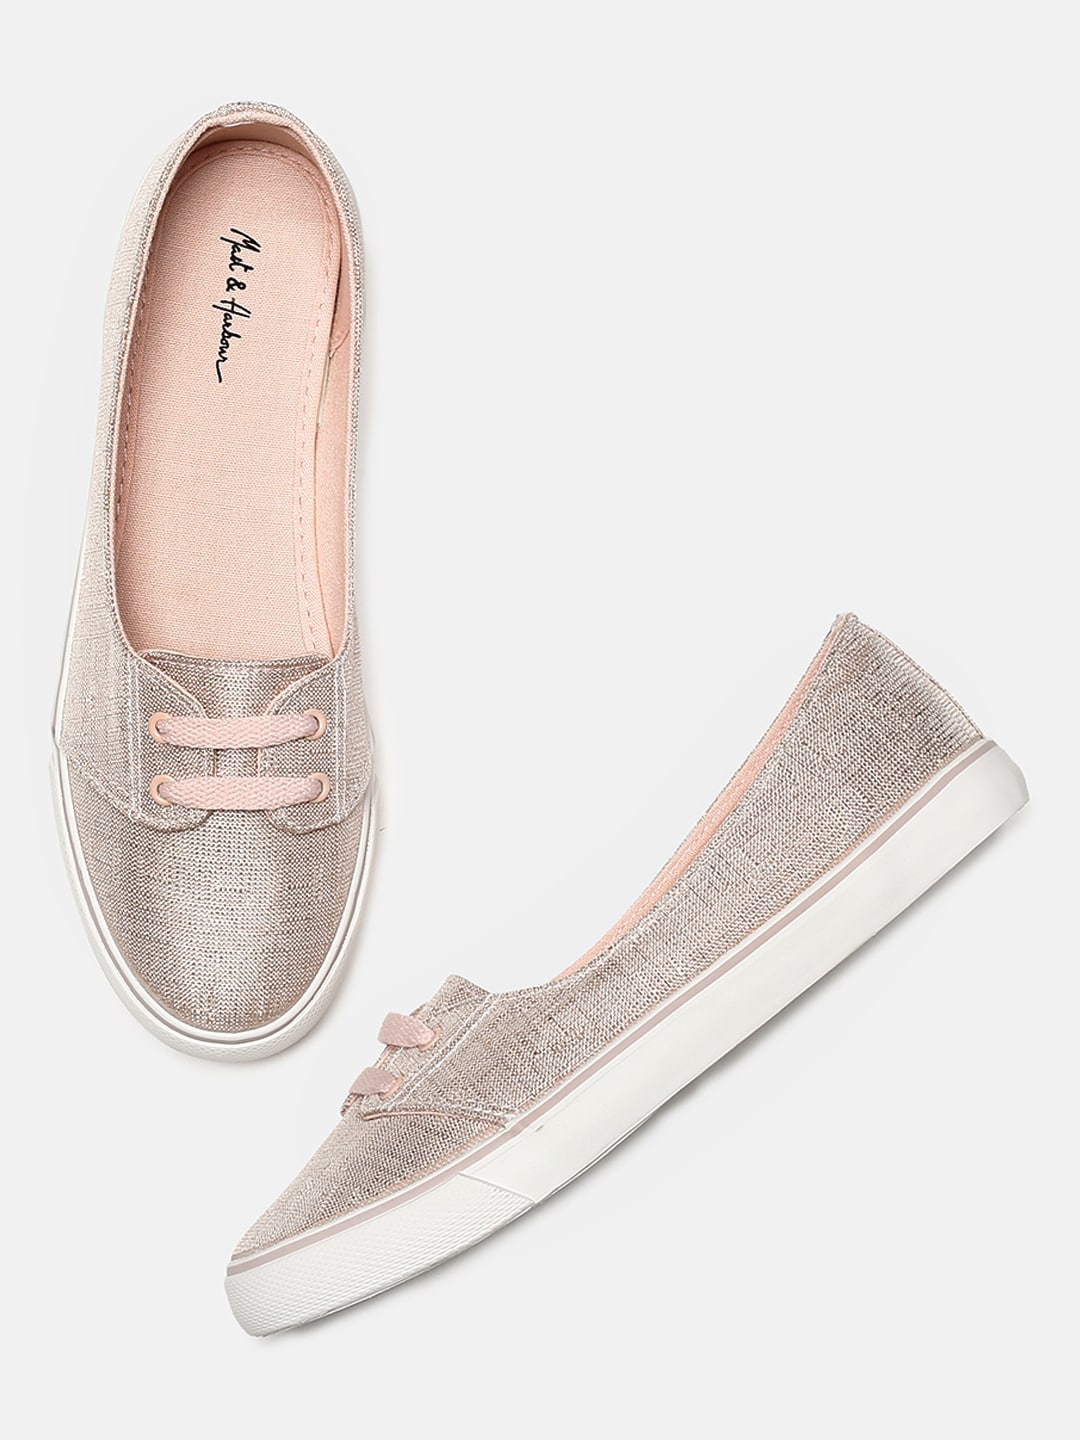 0ab62eb532 Casual Shoes For Women - Buy Women s Casual Shoes Online from Myntra